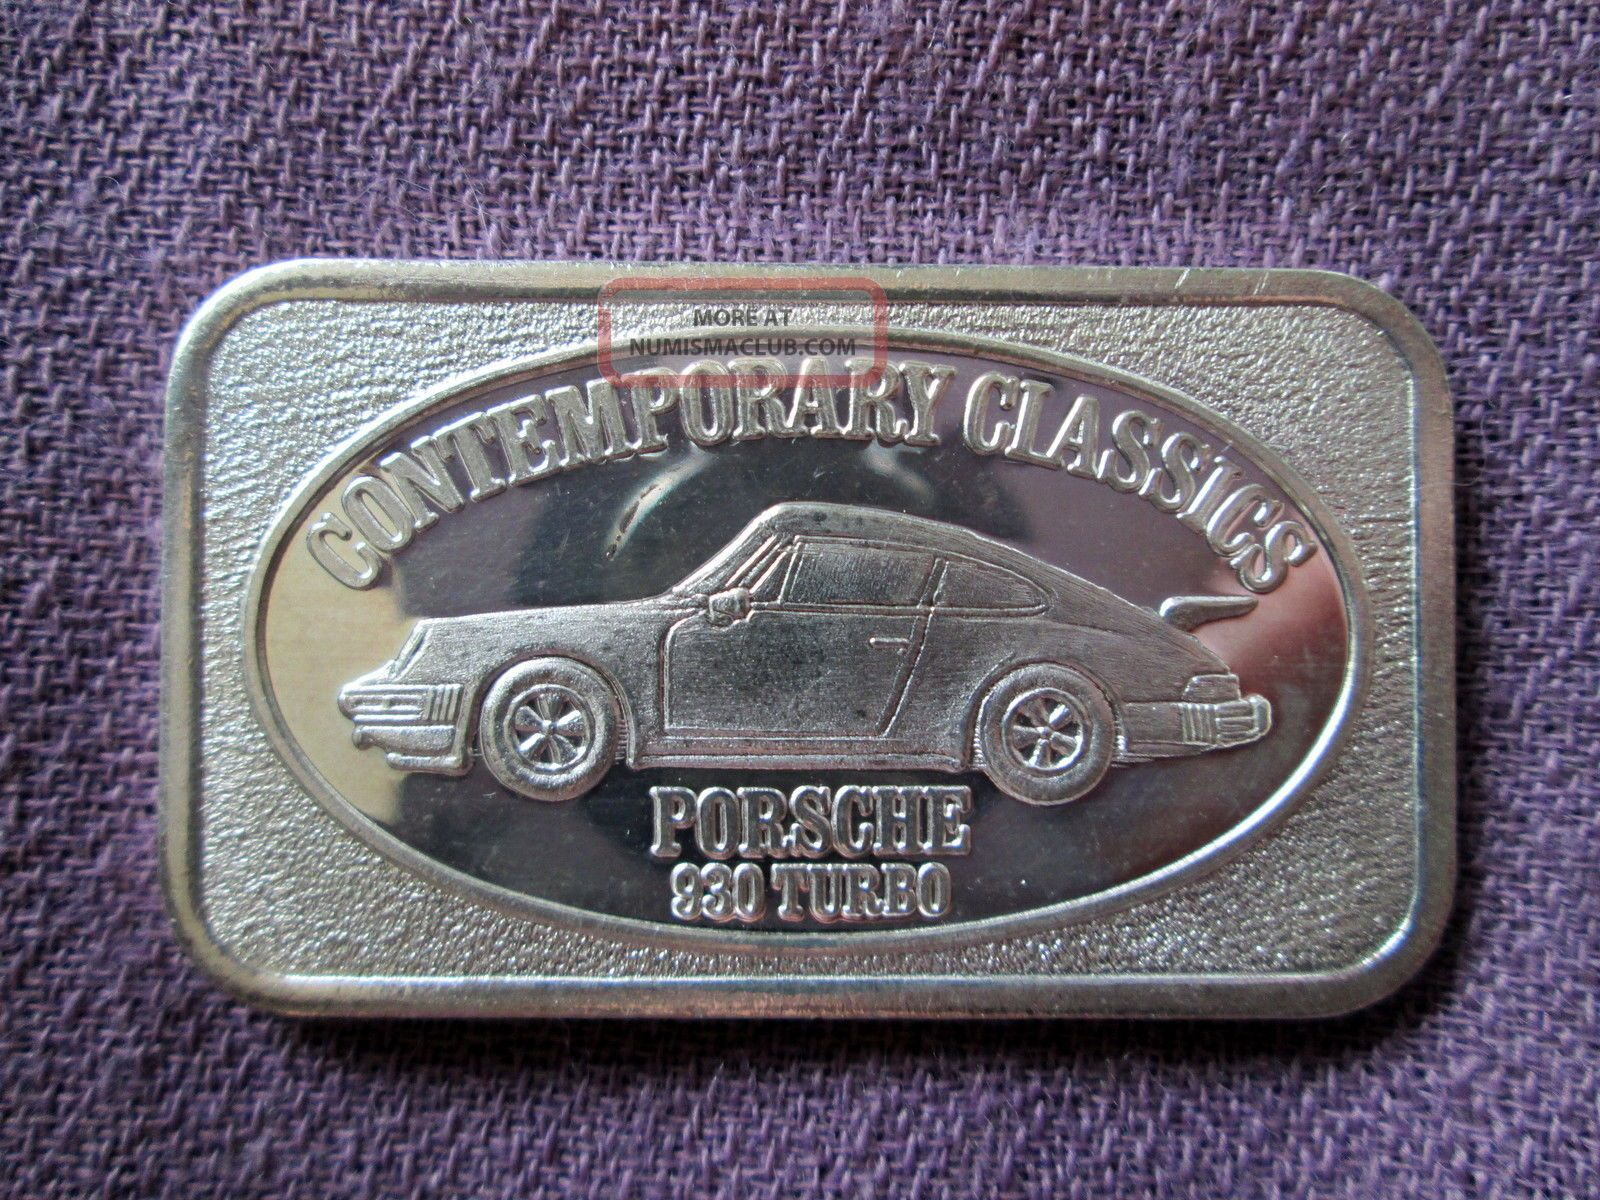 Porsche 930 Turbo Classic Cars Rare 1 Troy Oz 999 Fine